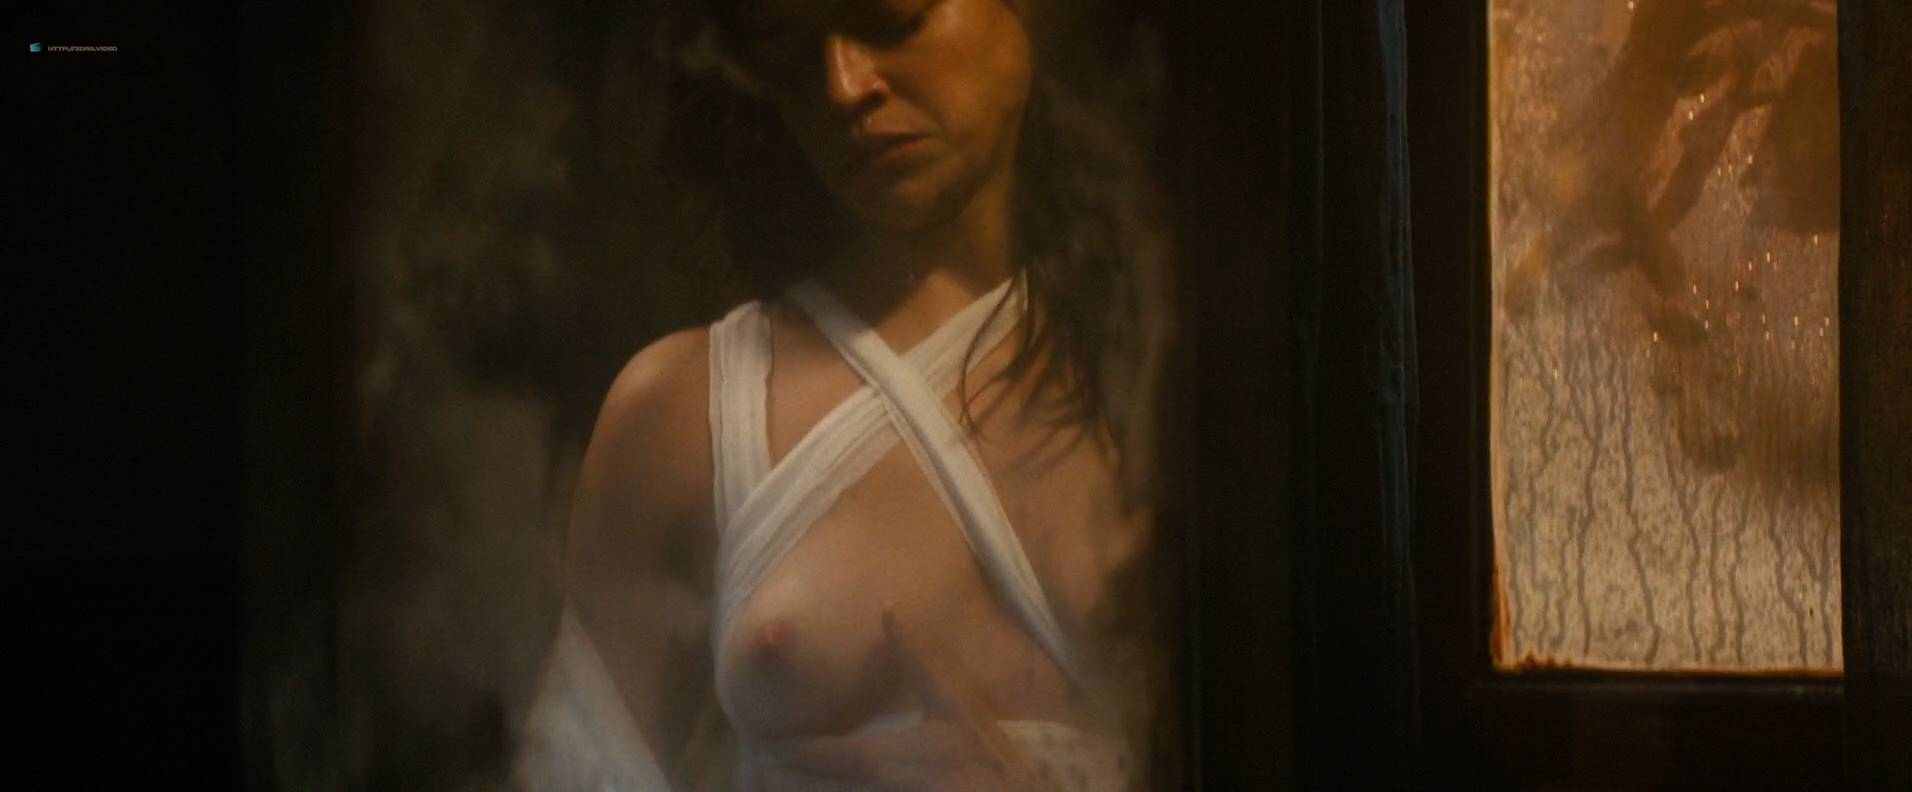 Join. Michelle rodriguez naked not